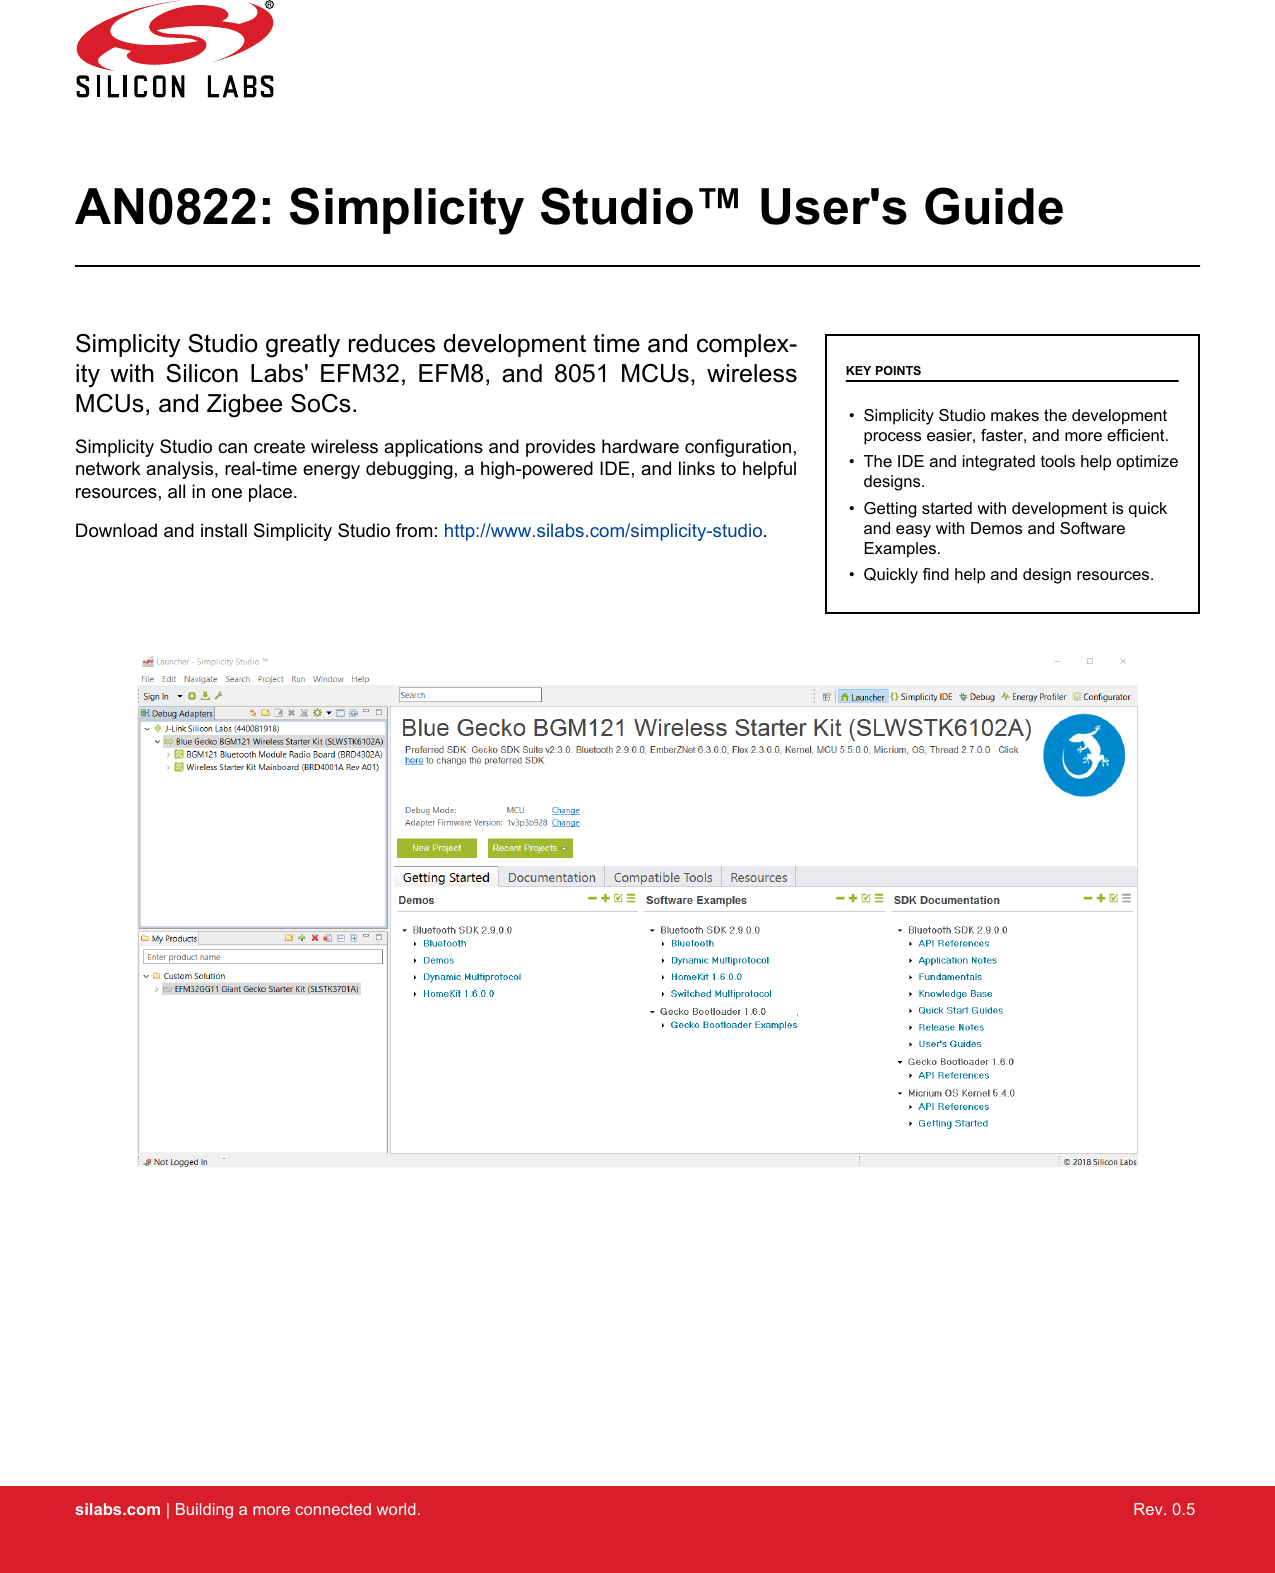 AN0822 simplicity studio user guide